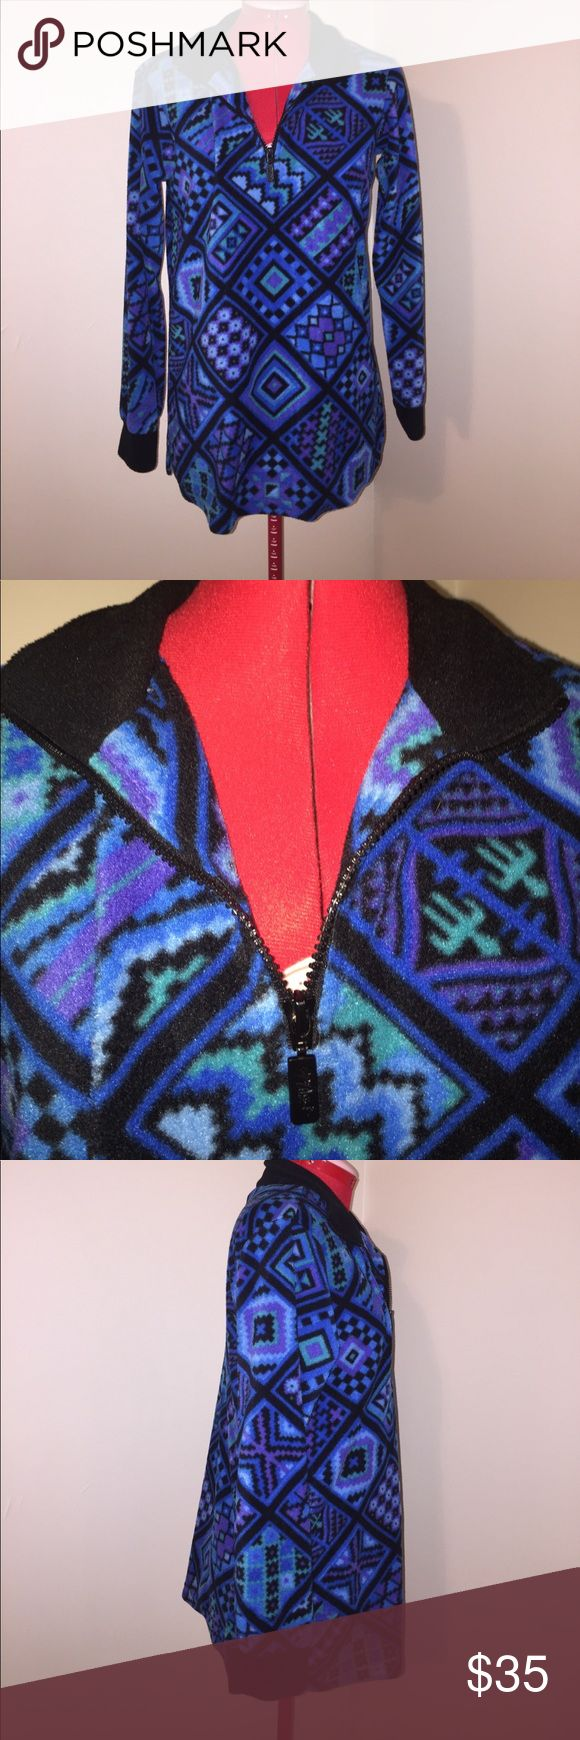 Bob Mackie Wearable Art half zip pullover Xxs Bob Mackie Wearable Art half zip pullover size Extra Extra Small  Armpit to armpit is 19 flat Shoulder to bottom is 26.5 flat Bob Mackie Sweaters